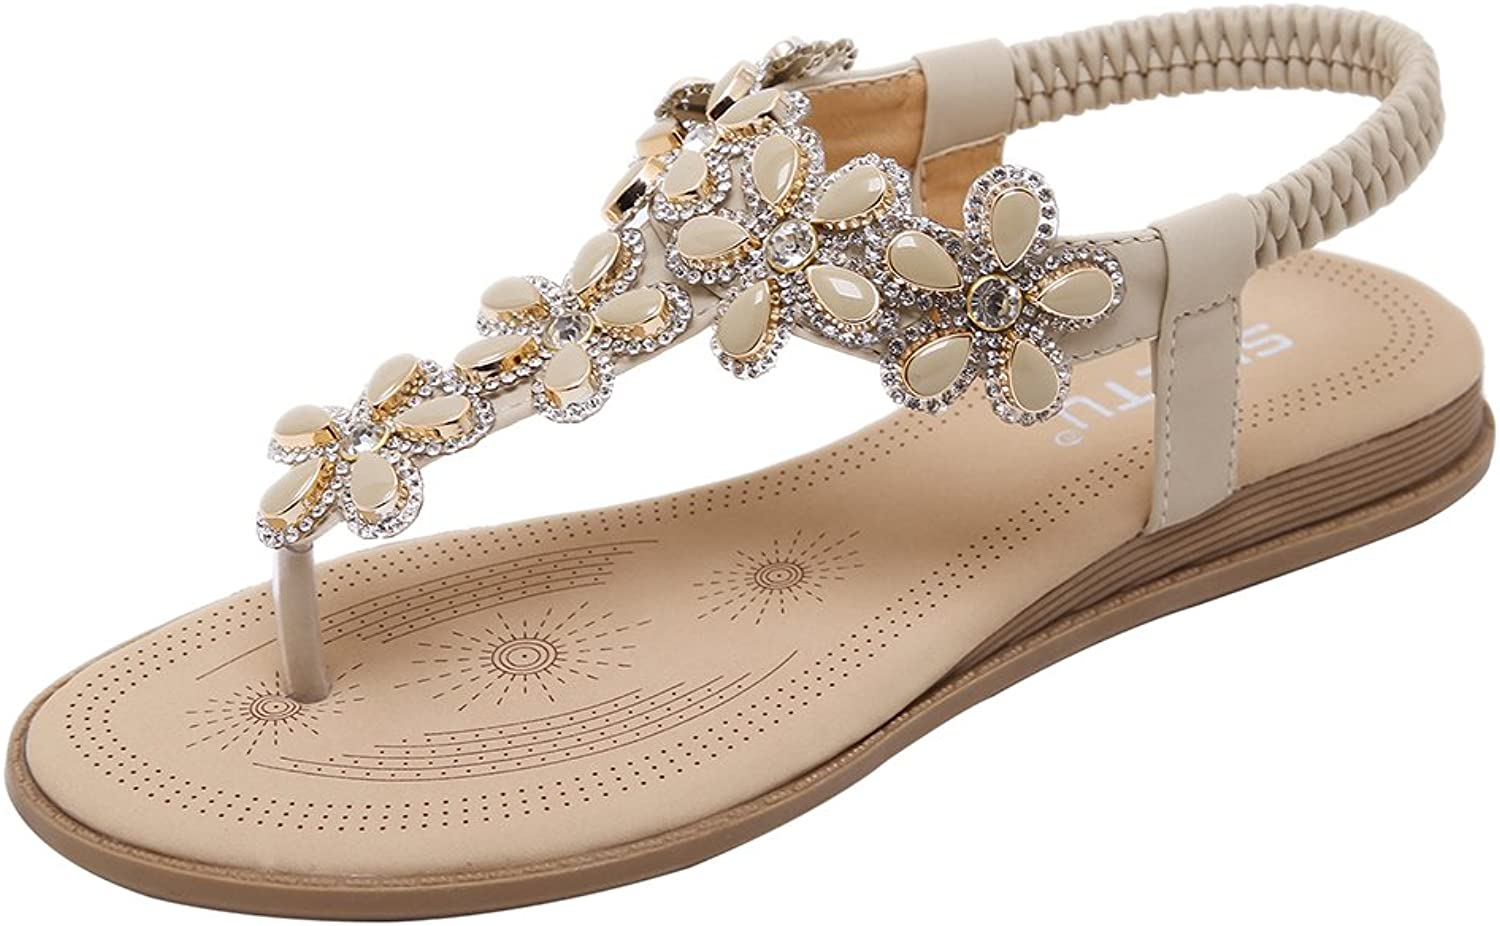 AGOWOO Jeweled Flat Thong Walking Beach Strap Sandals for Women